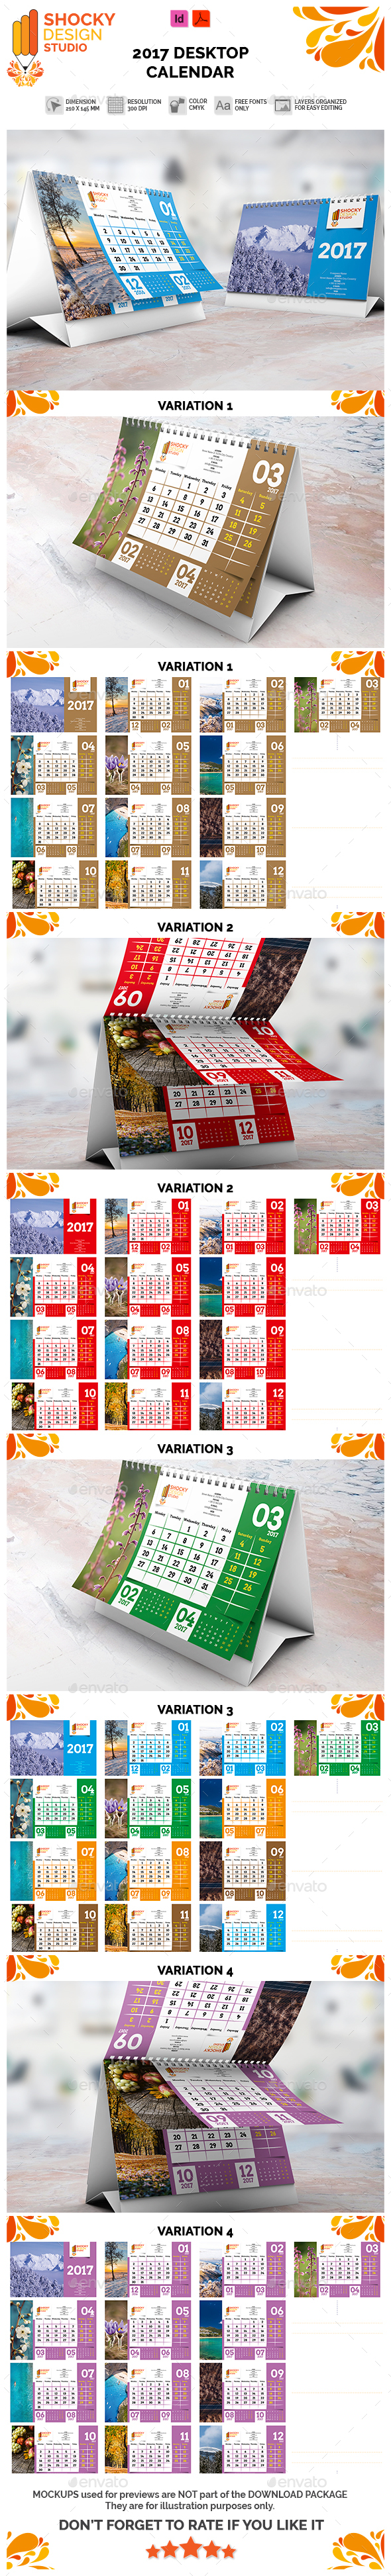 2017 Desktop Calendar Template - Calendars Stationery